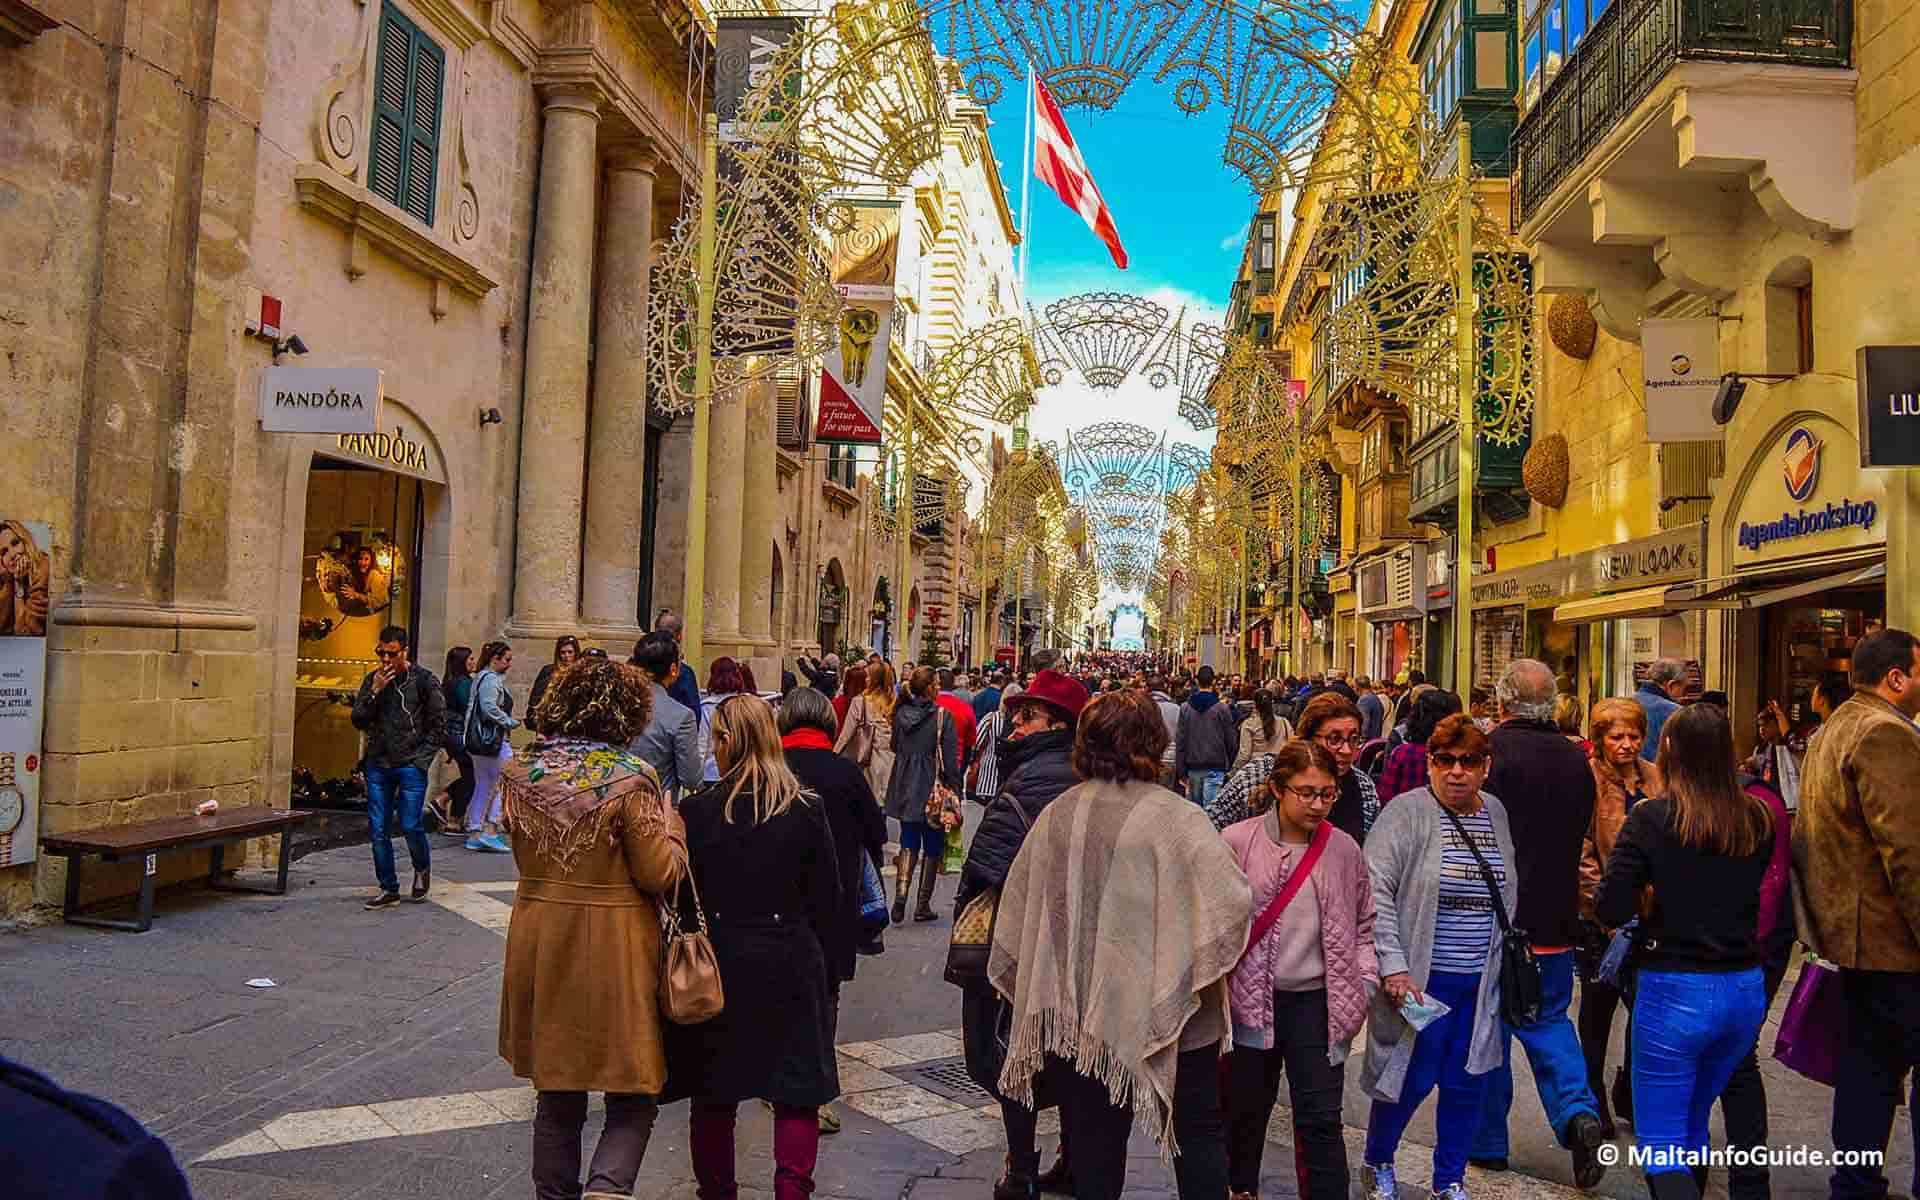 Republic street in Valletta during a busy day